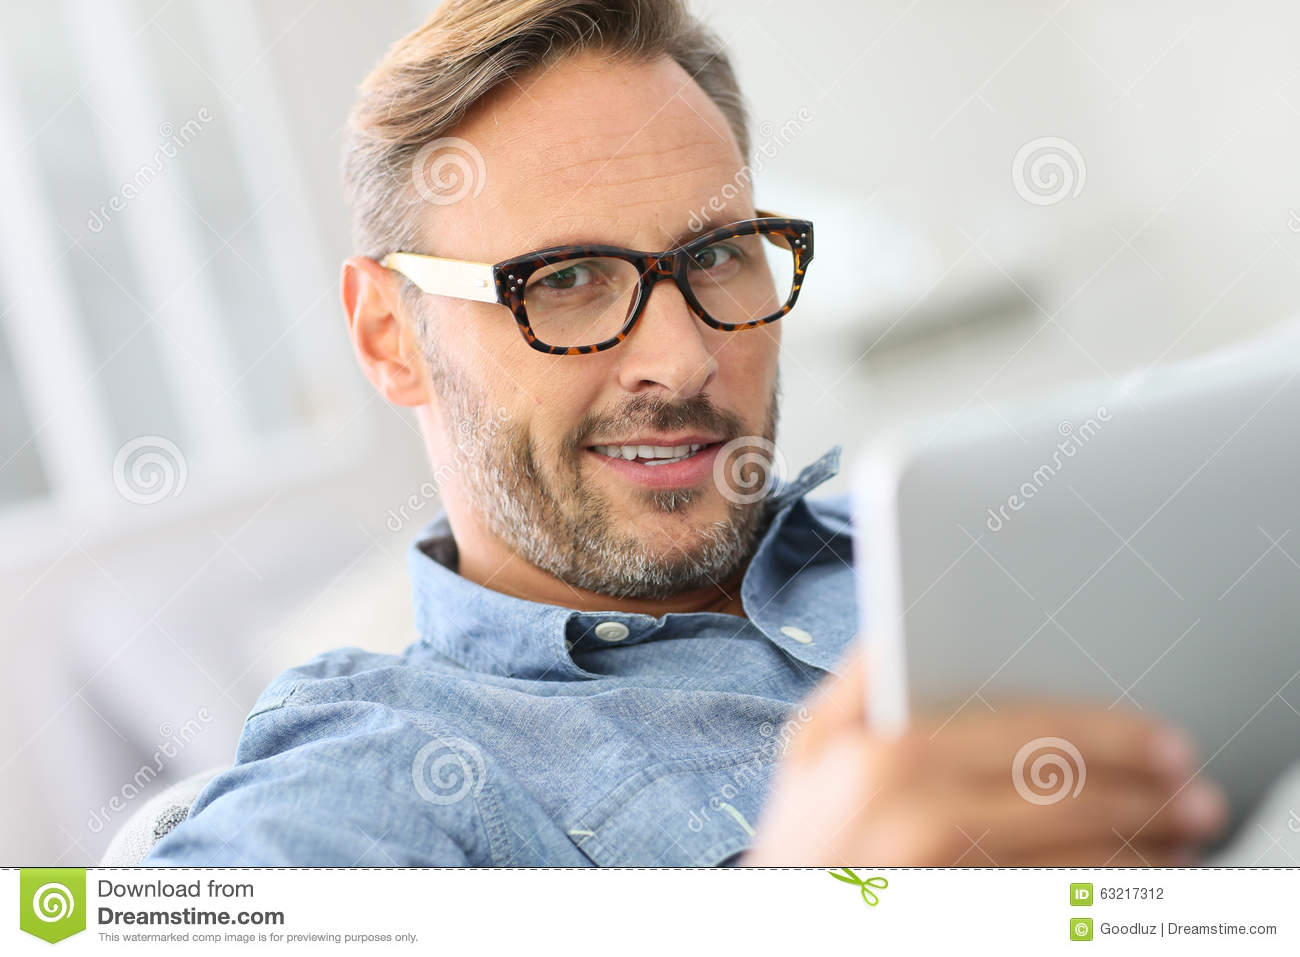 b523663cc4a Handsome Man Wearing Eyeglasses And Websurfing Stock Photo - Image ...